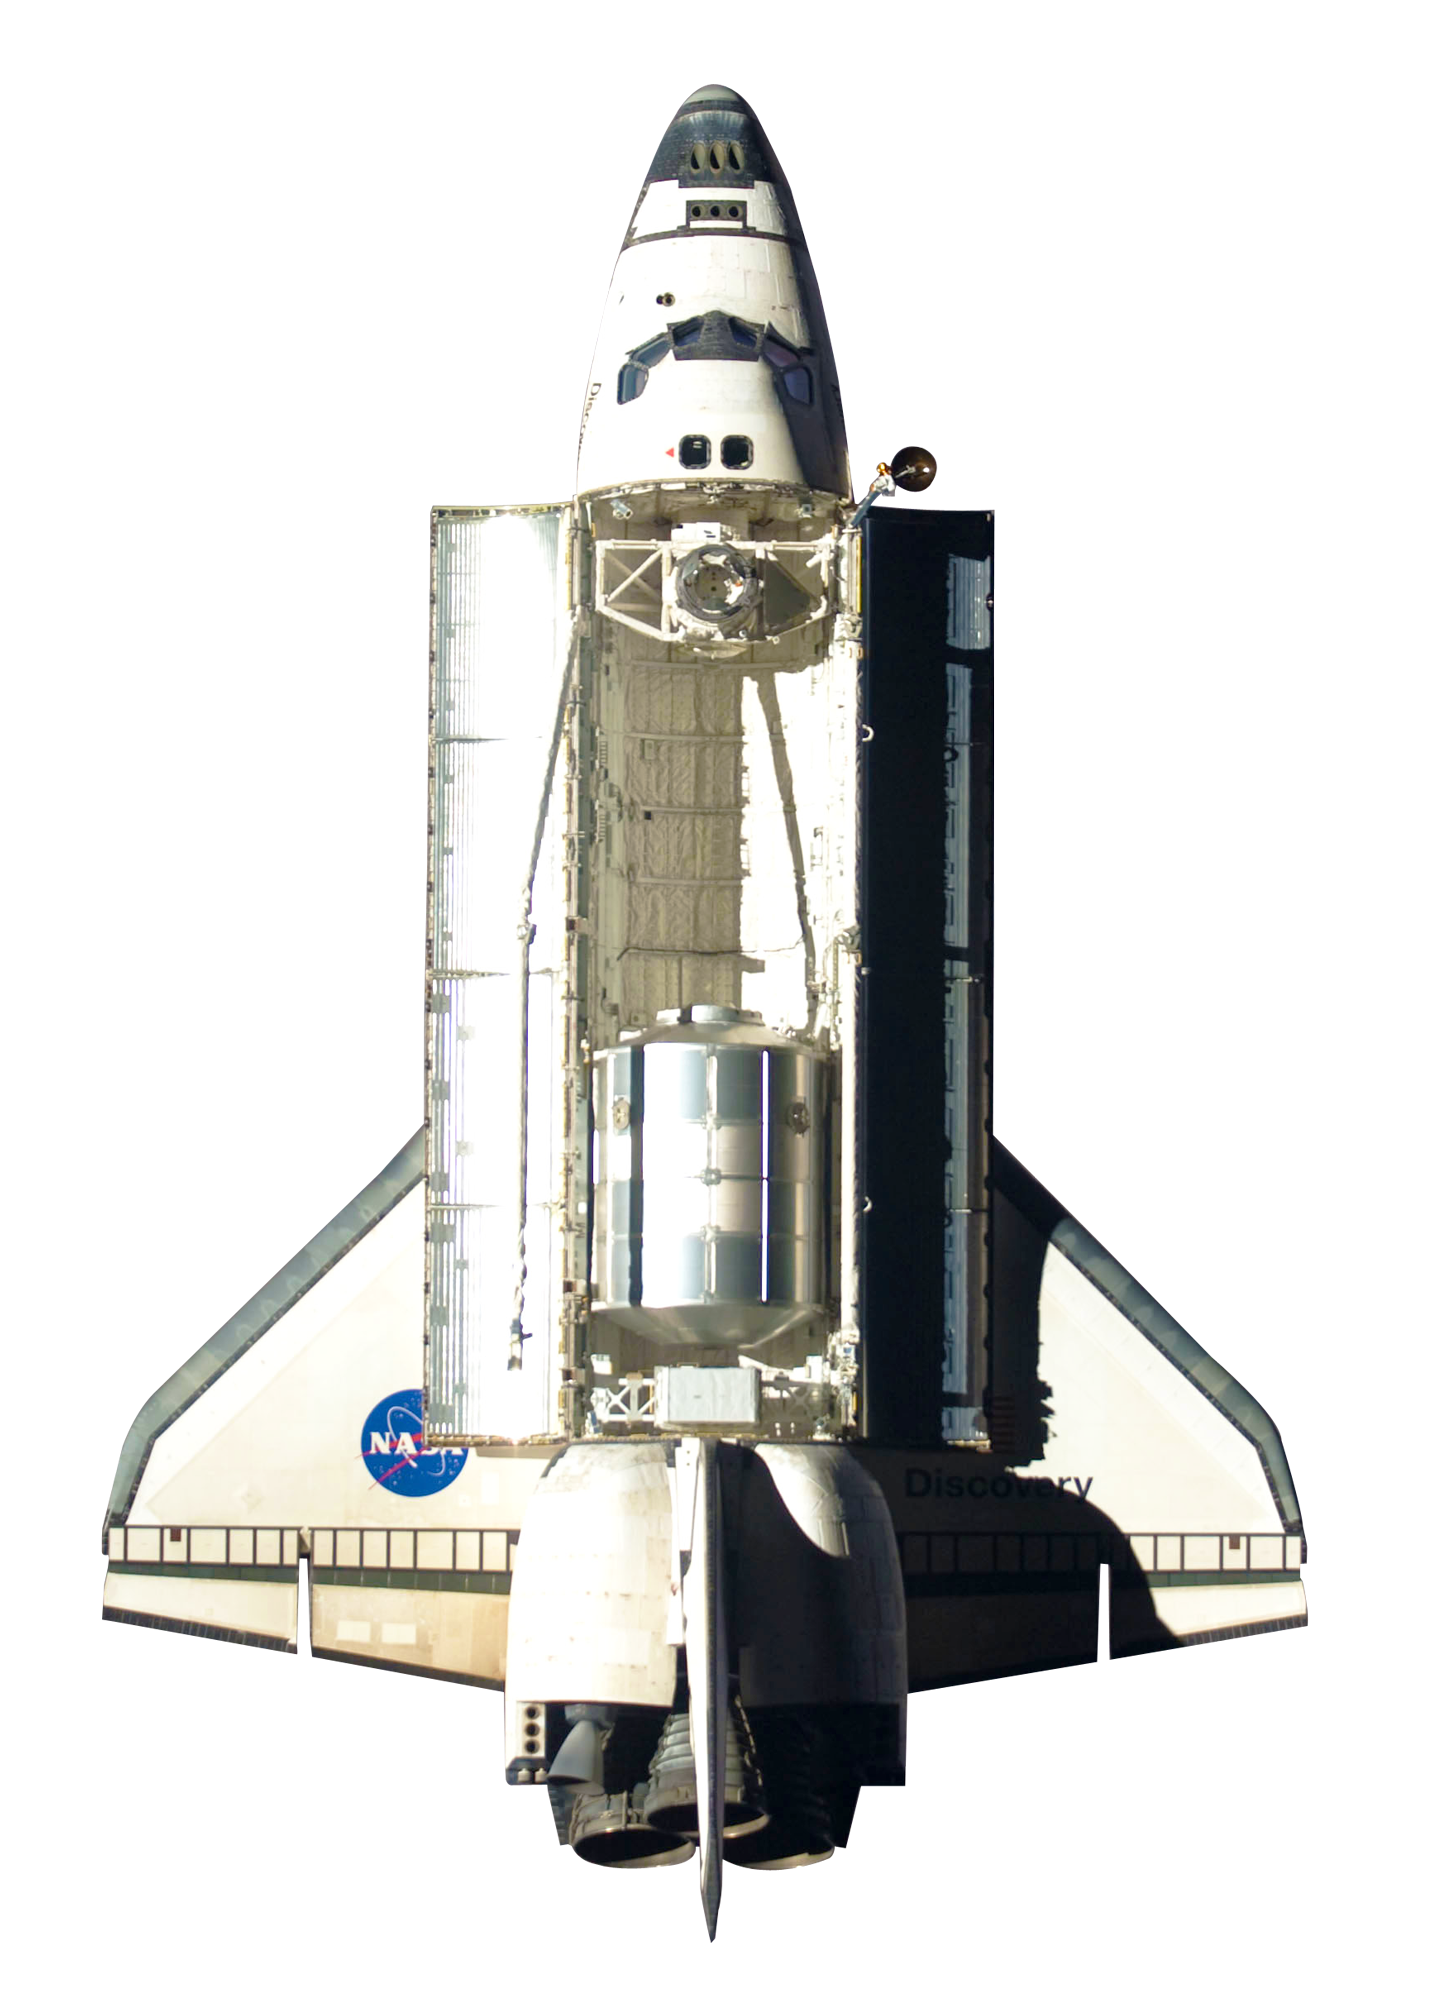 Space Shuttle Png Image Space Shuttle Shuttling Space